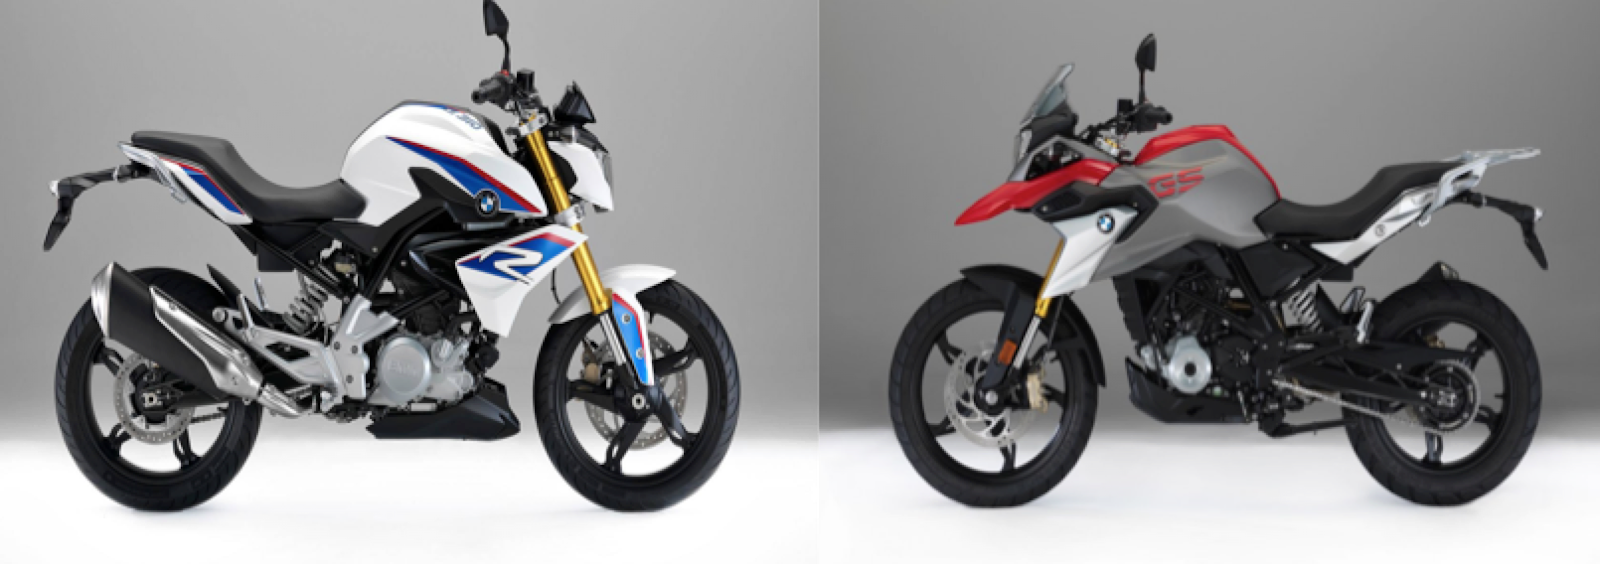 BMW G310 R and G 310 GS